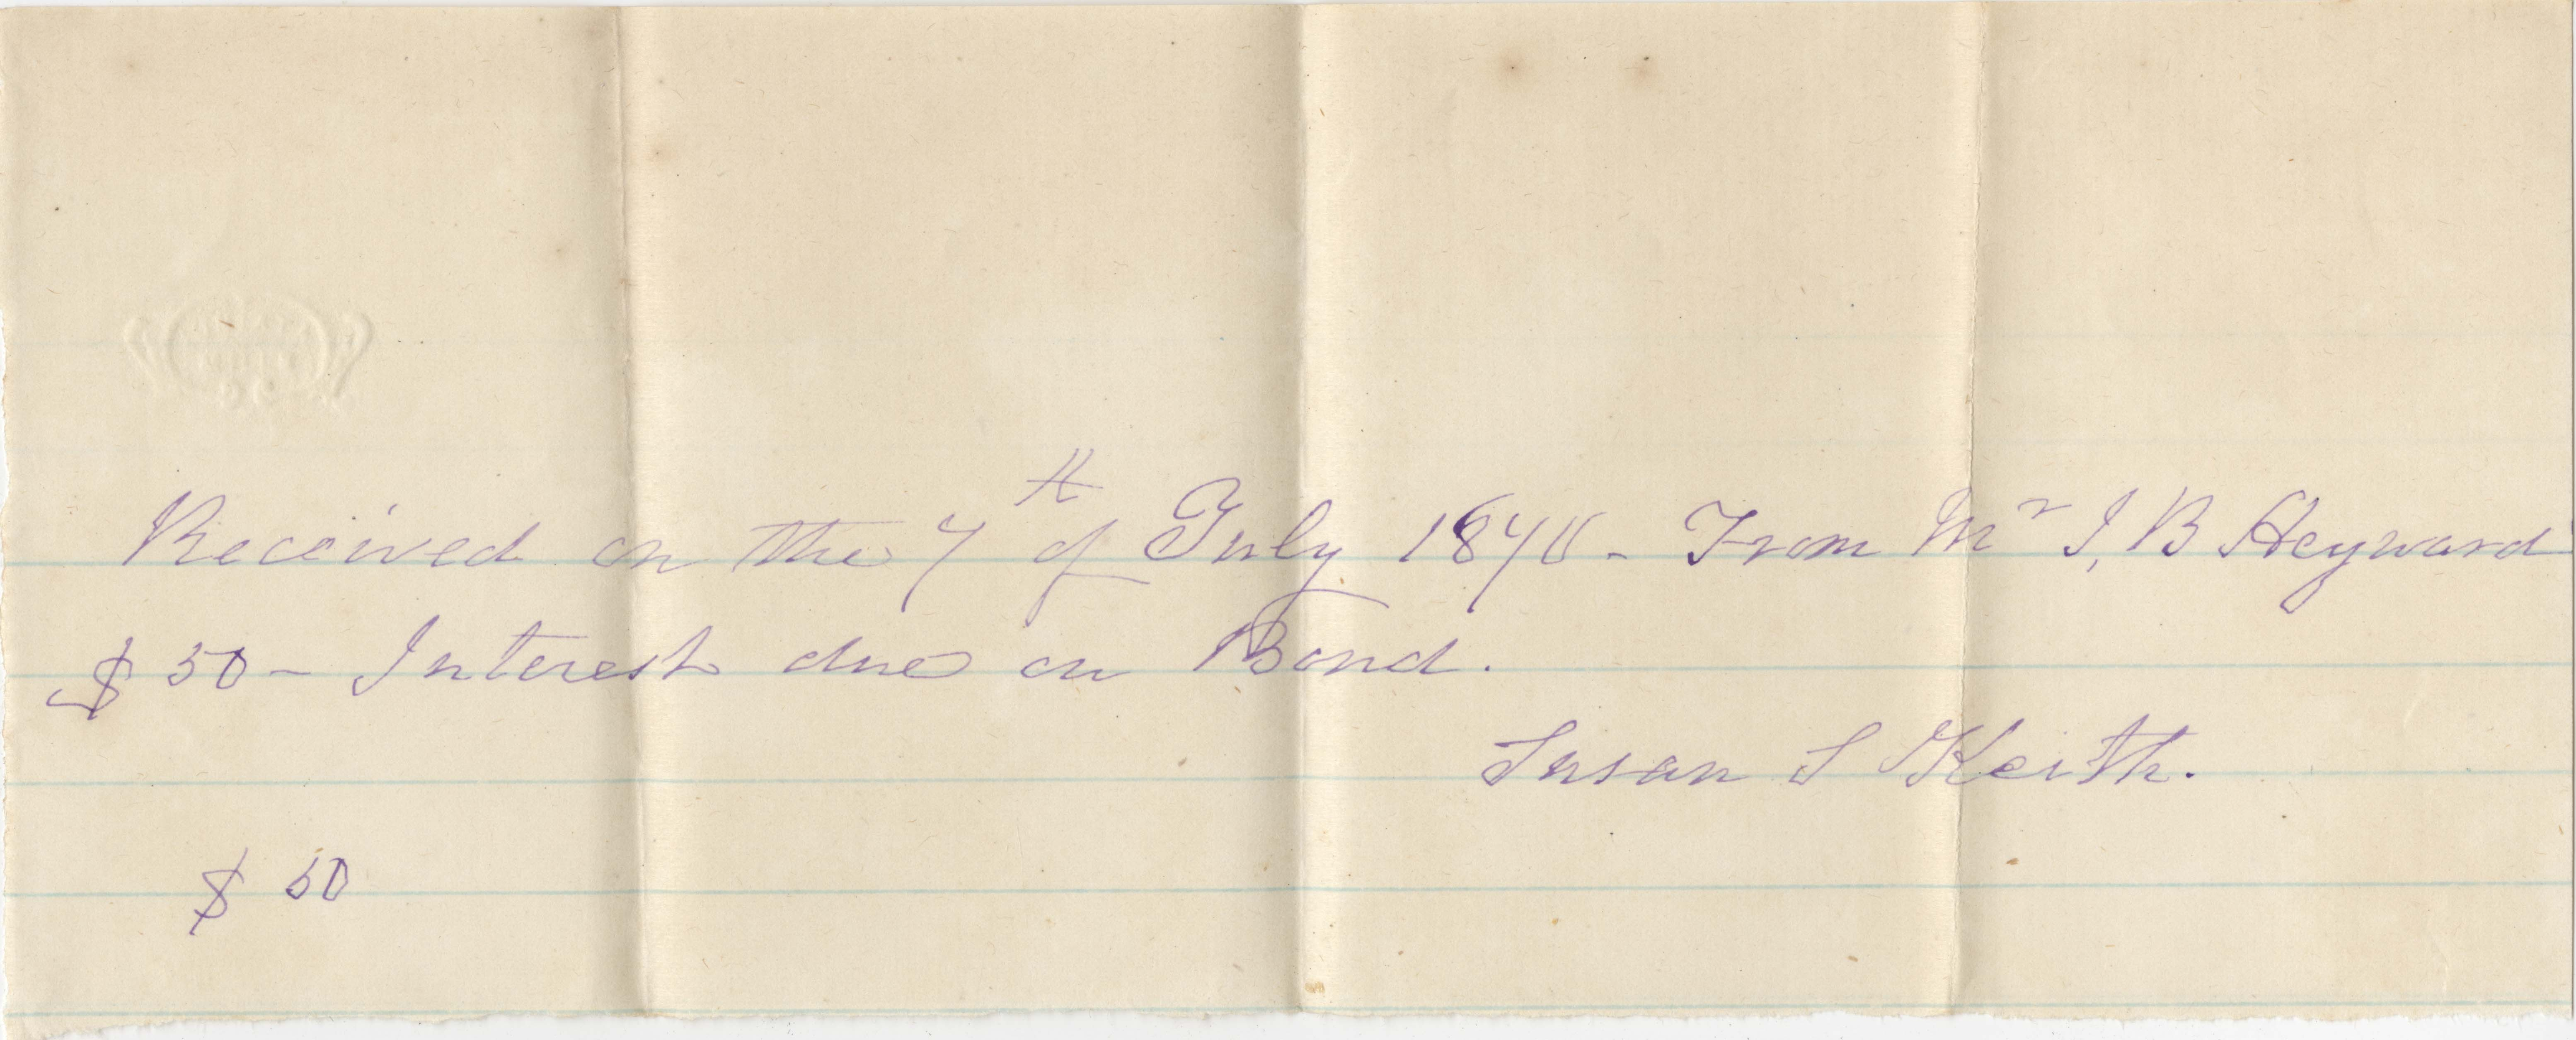 375. Receipt of monies received by Susan S. Keith from James B. Heyward -- 1840(?) -1873